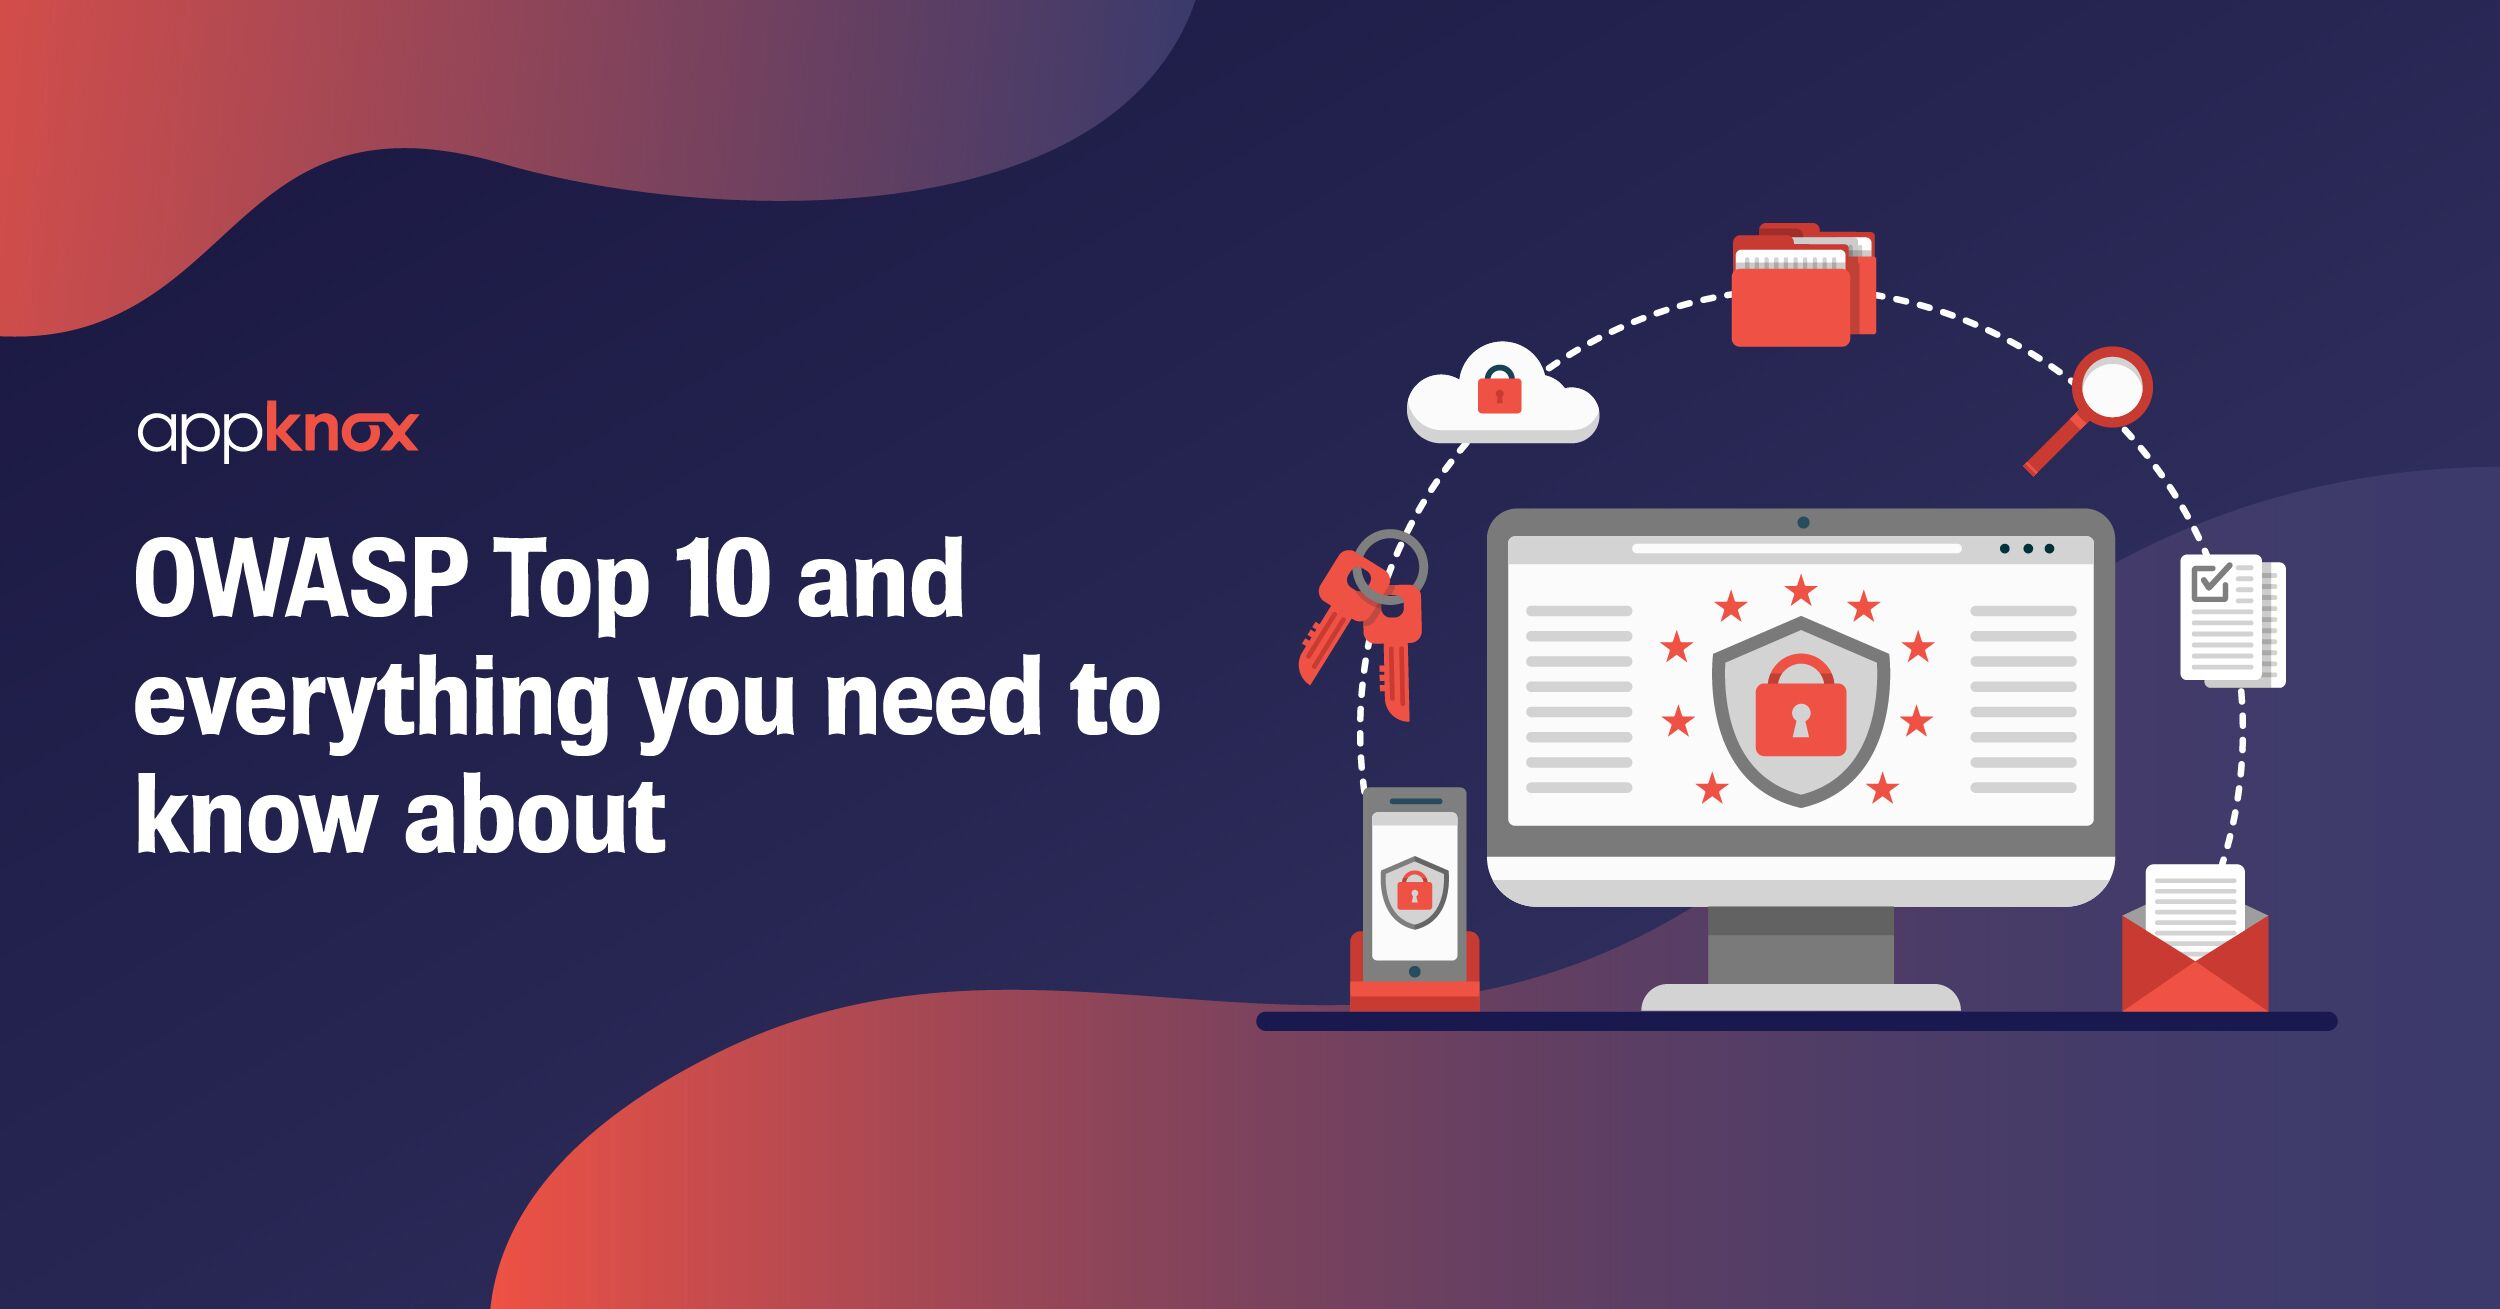 OWASP Top 10 Everything you need to know about